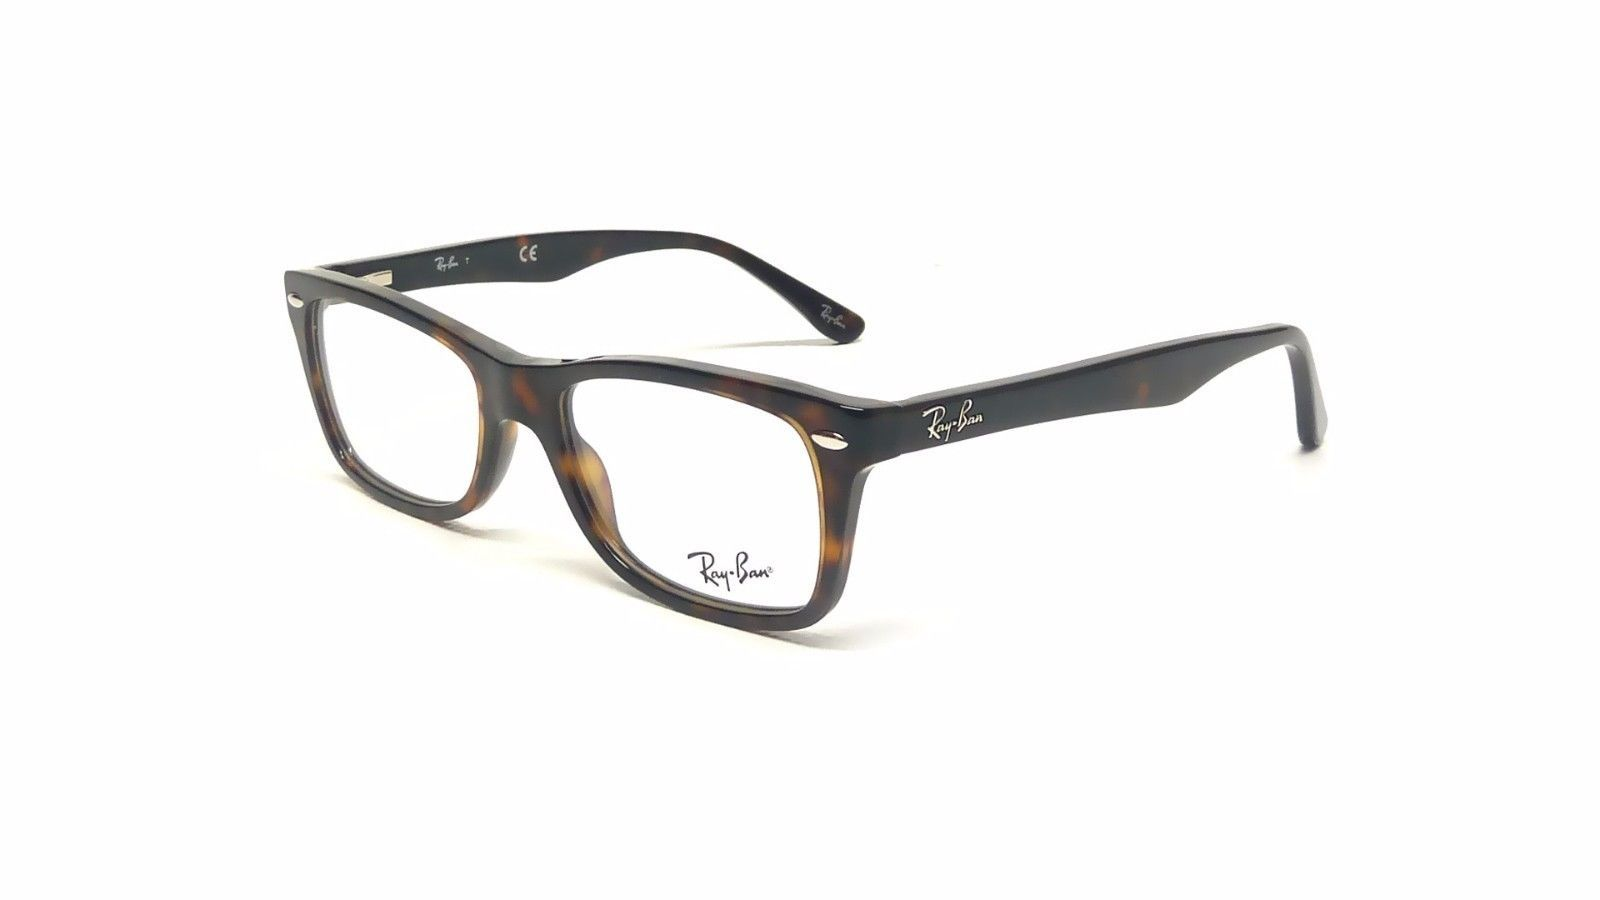 5d5fd200ae Authentic Ray-Ban Eyeglasses RB5228 RX5228 2012 53MM Dark Havana Frames  RX-ABLE